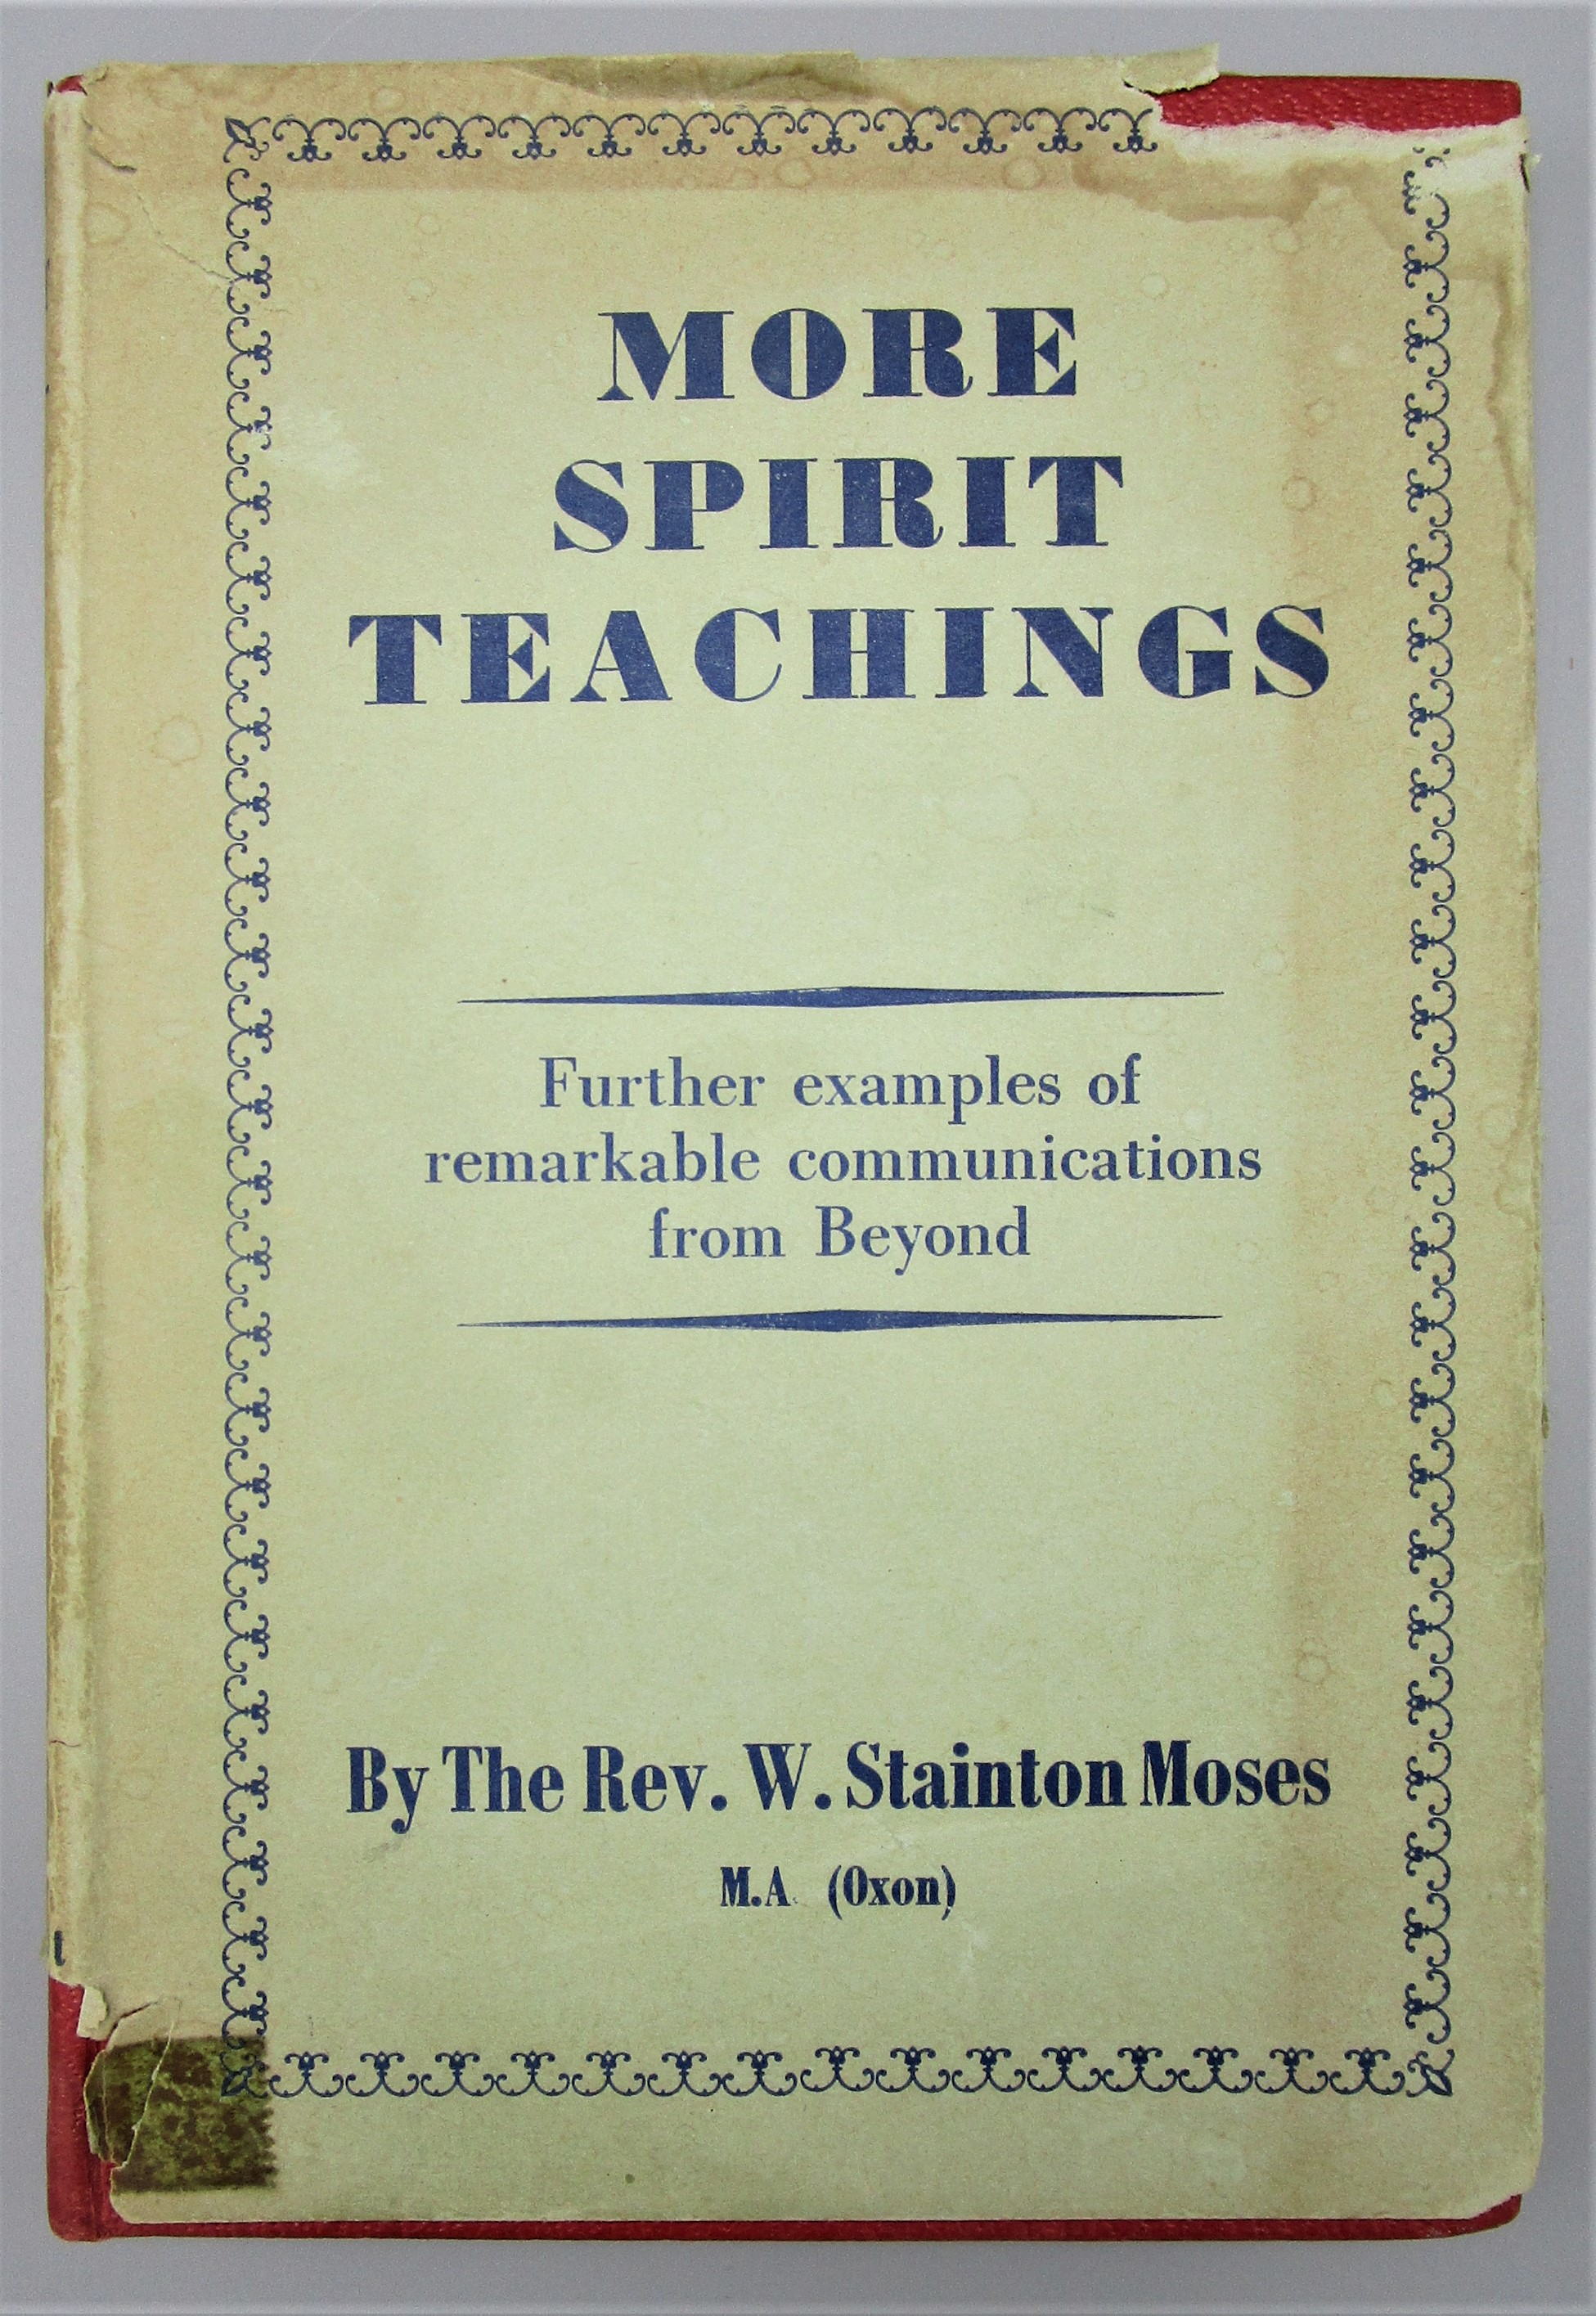 MORE SPIRIT TEACHINGS, by The Rev. W. Stainton Moses - 1952